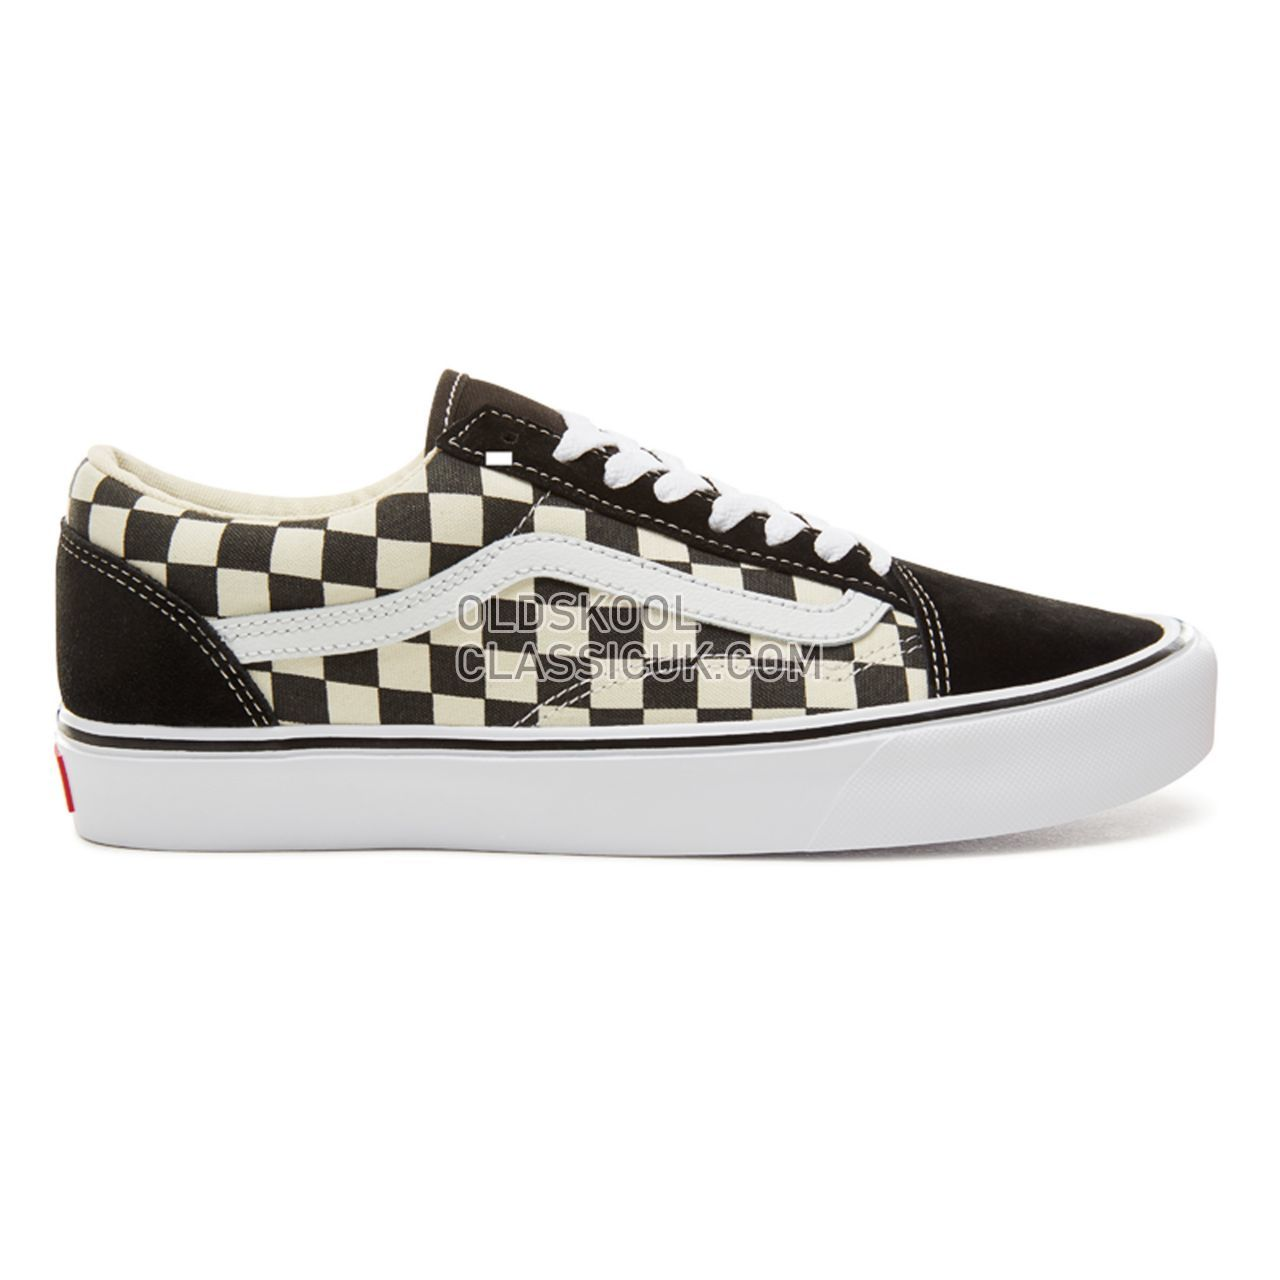 a9937743ab24 Vans Checkerboard Old Skool Lite Sneakers Mens Womens Unisex Black-White  VA2Z5W5GX Shoes ...